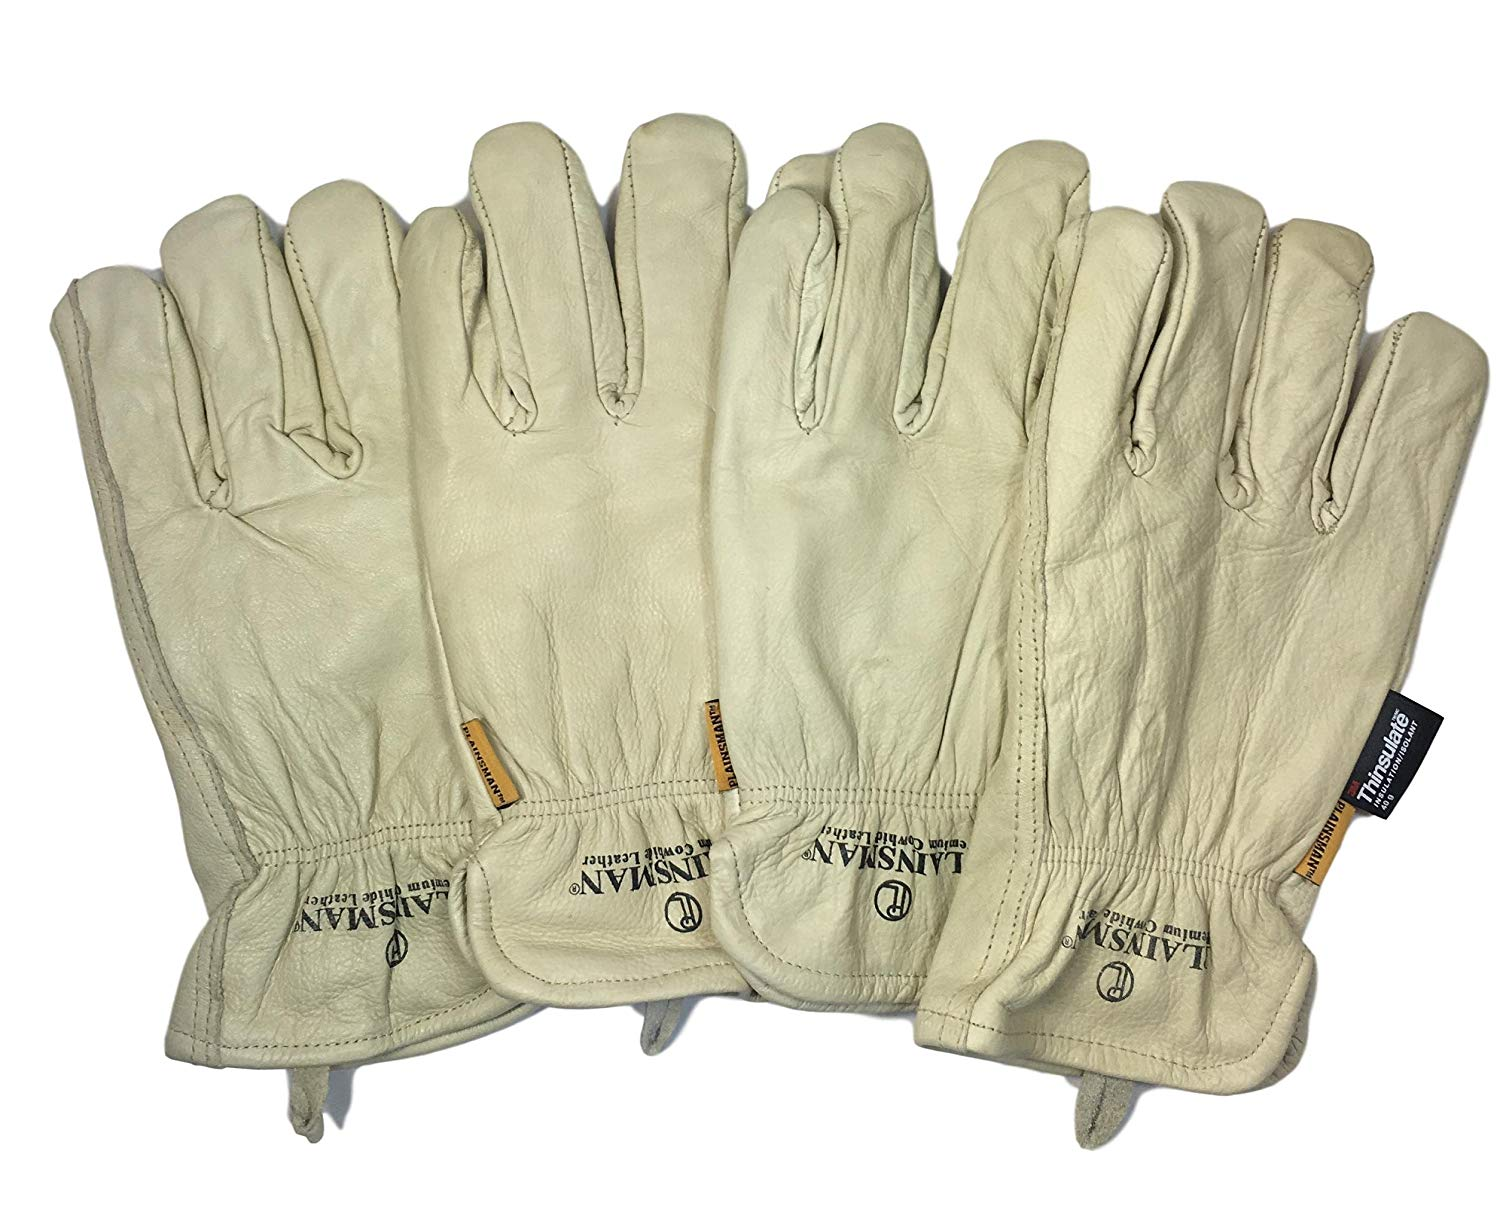 c07aa61e8d09a Get Quotations · Large - Plainsman - 2 Pairs - Premium Cowhide Leather Work  Gloves 3M Thinsulate Insulation Fleece